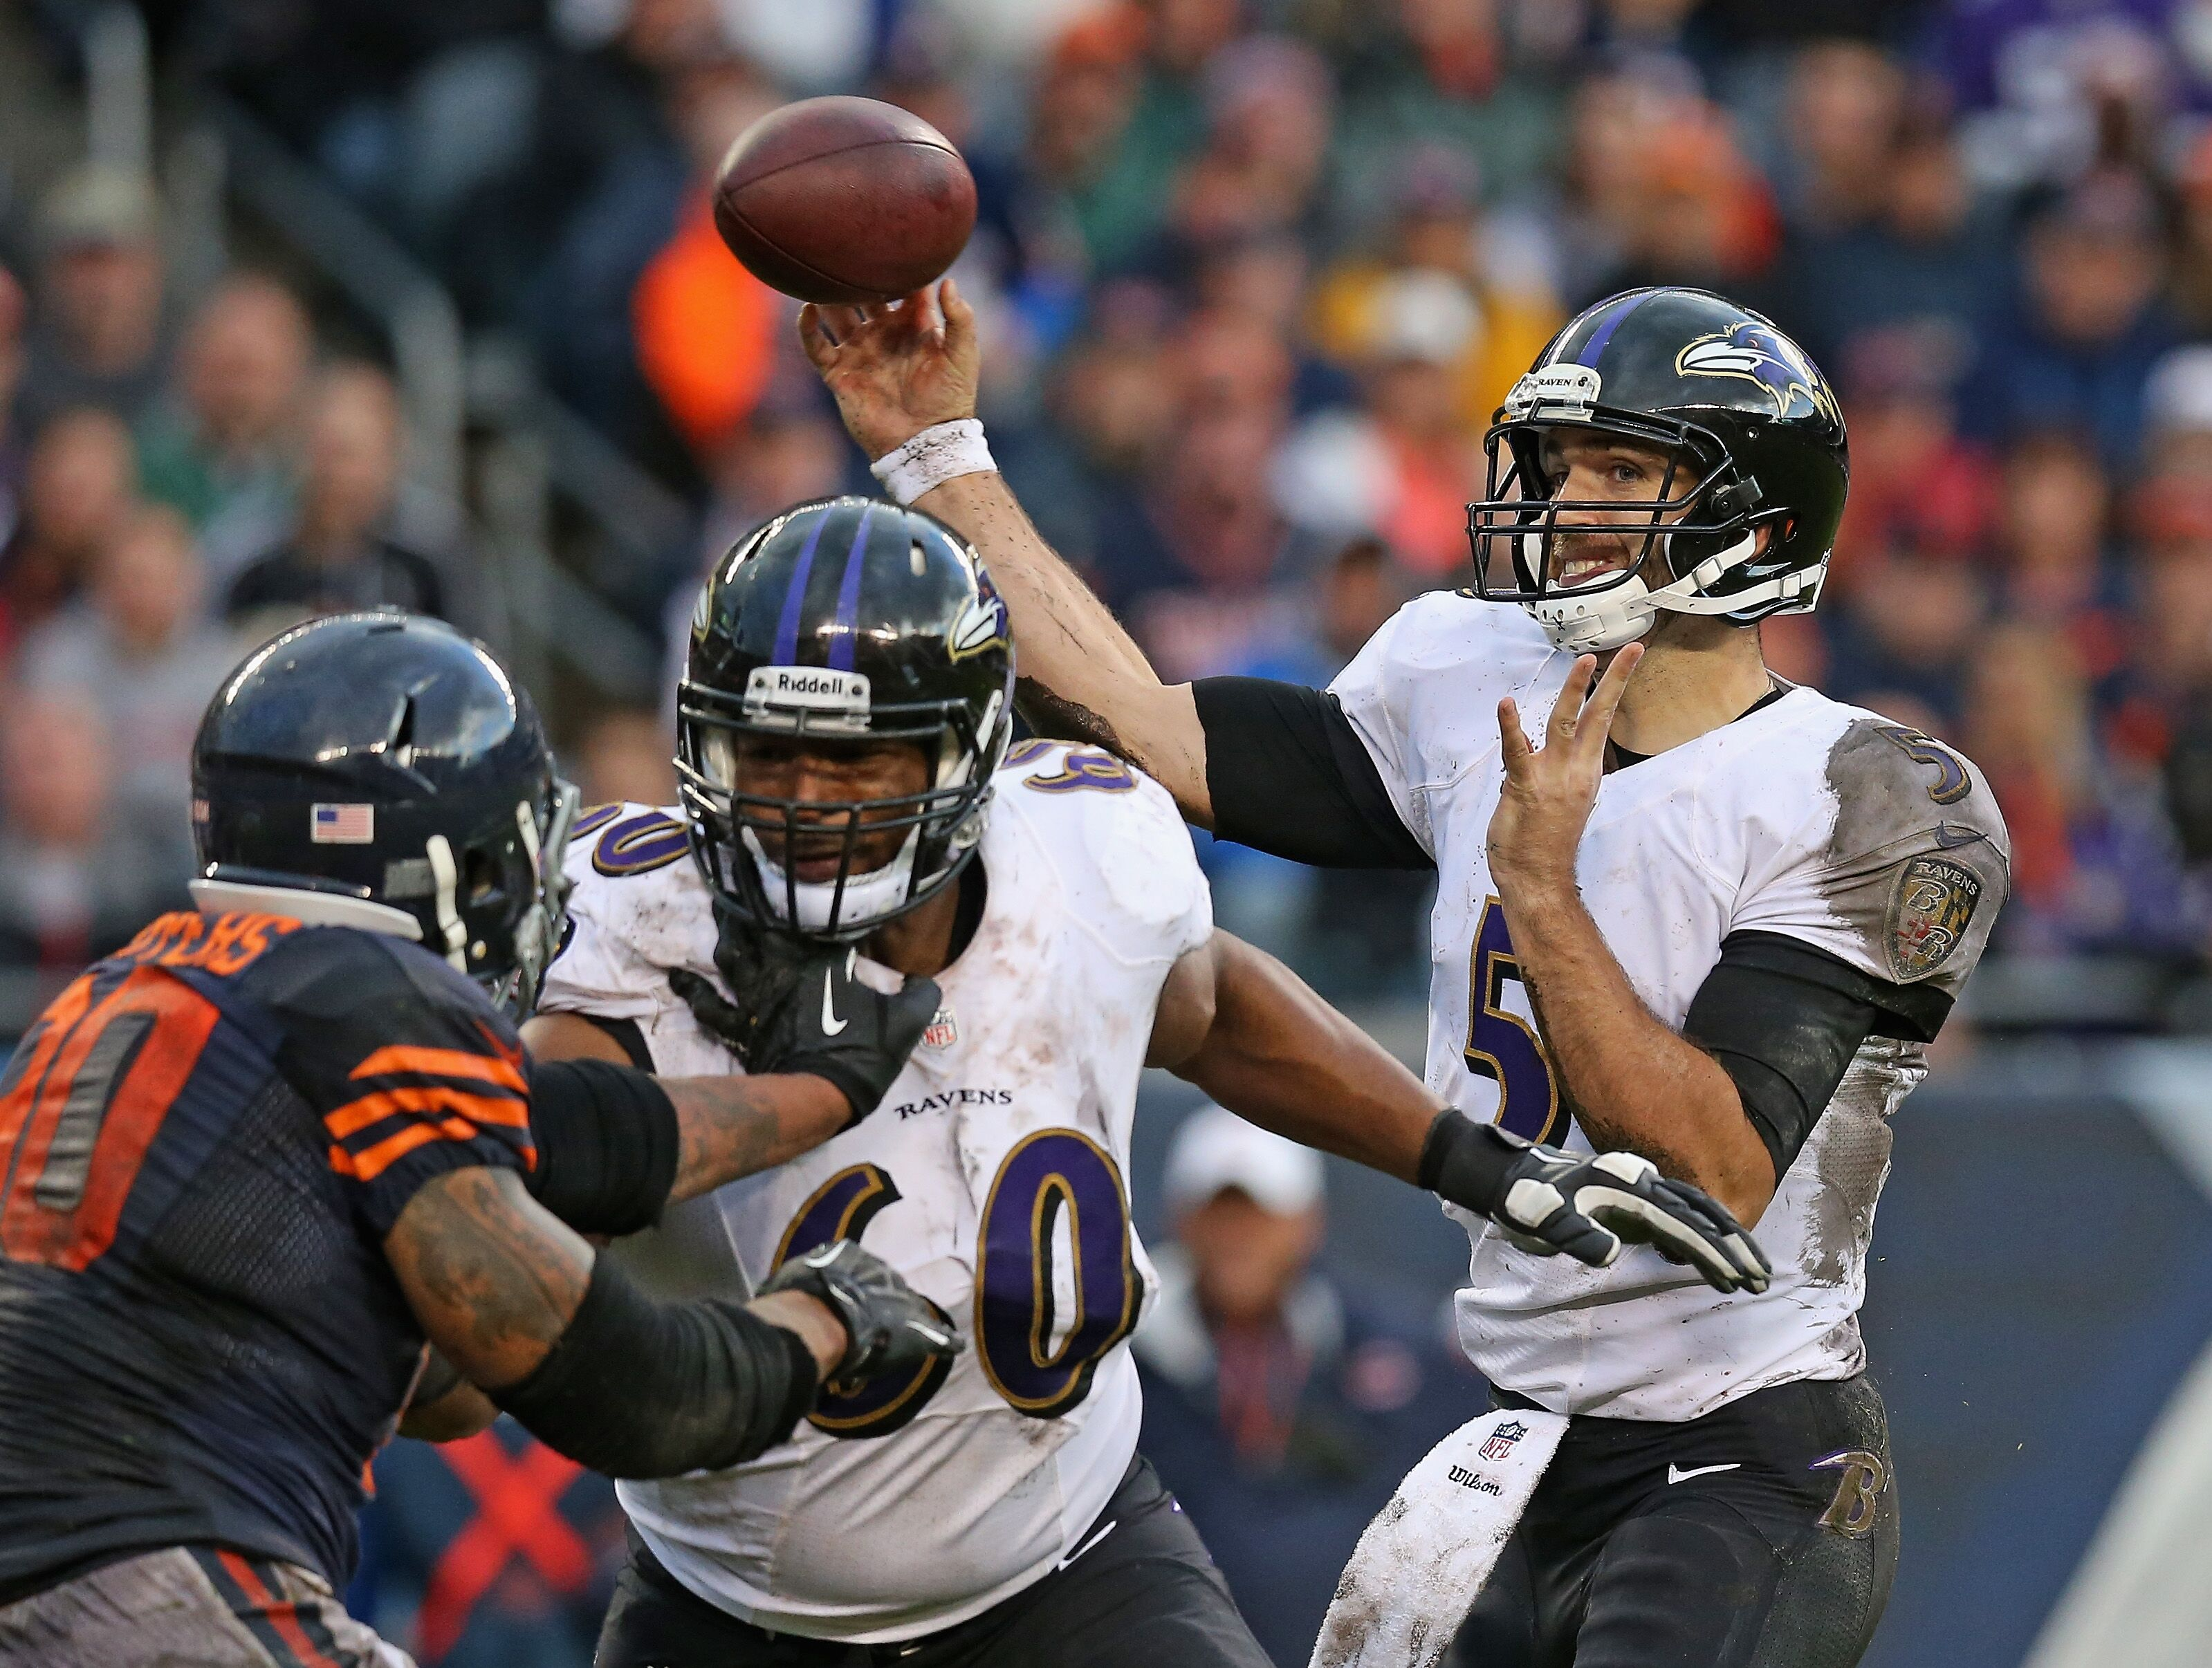 451175721-baltimore-ravens-v-chicago-bears.jpg